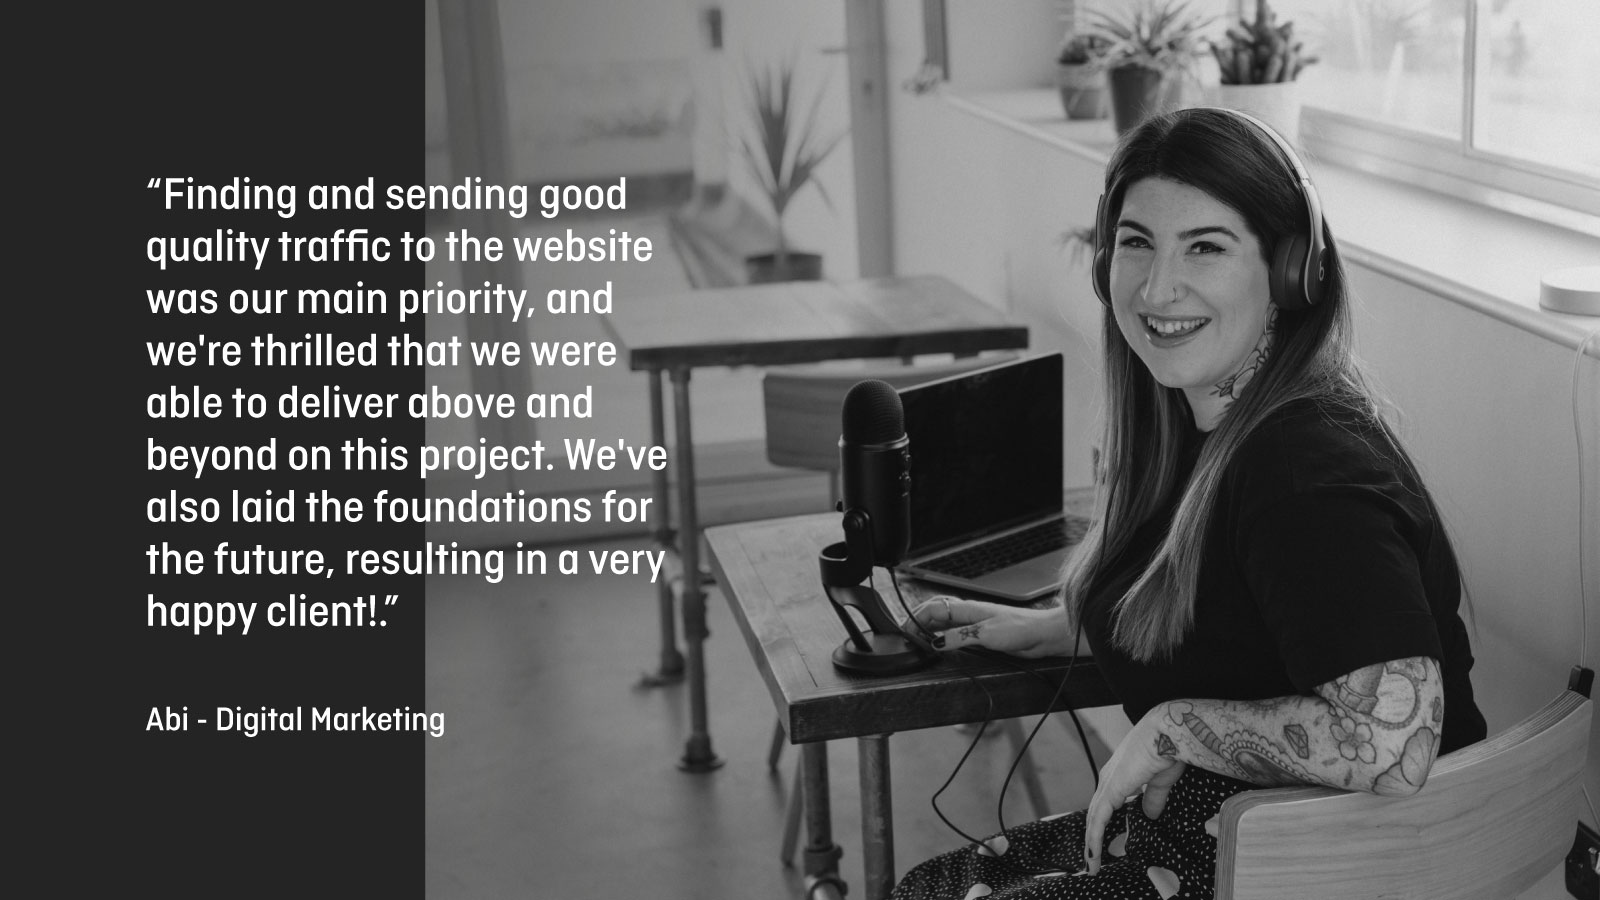 Abi, our digital marketing specialist with her quote.